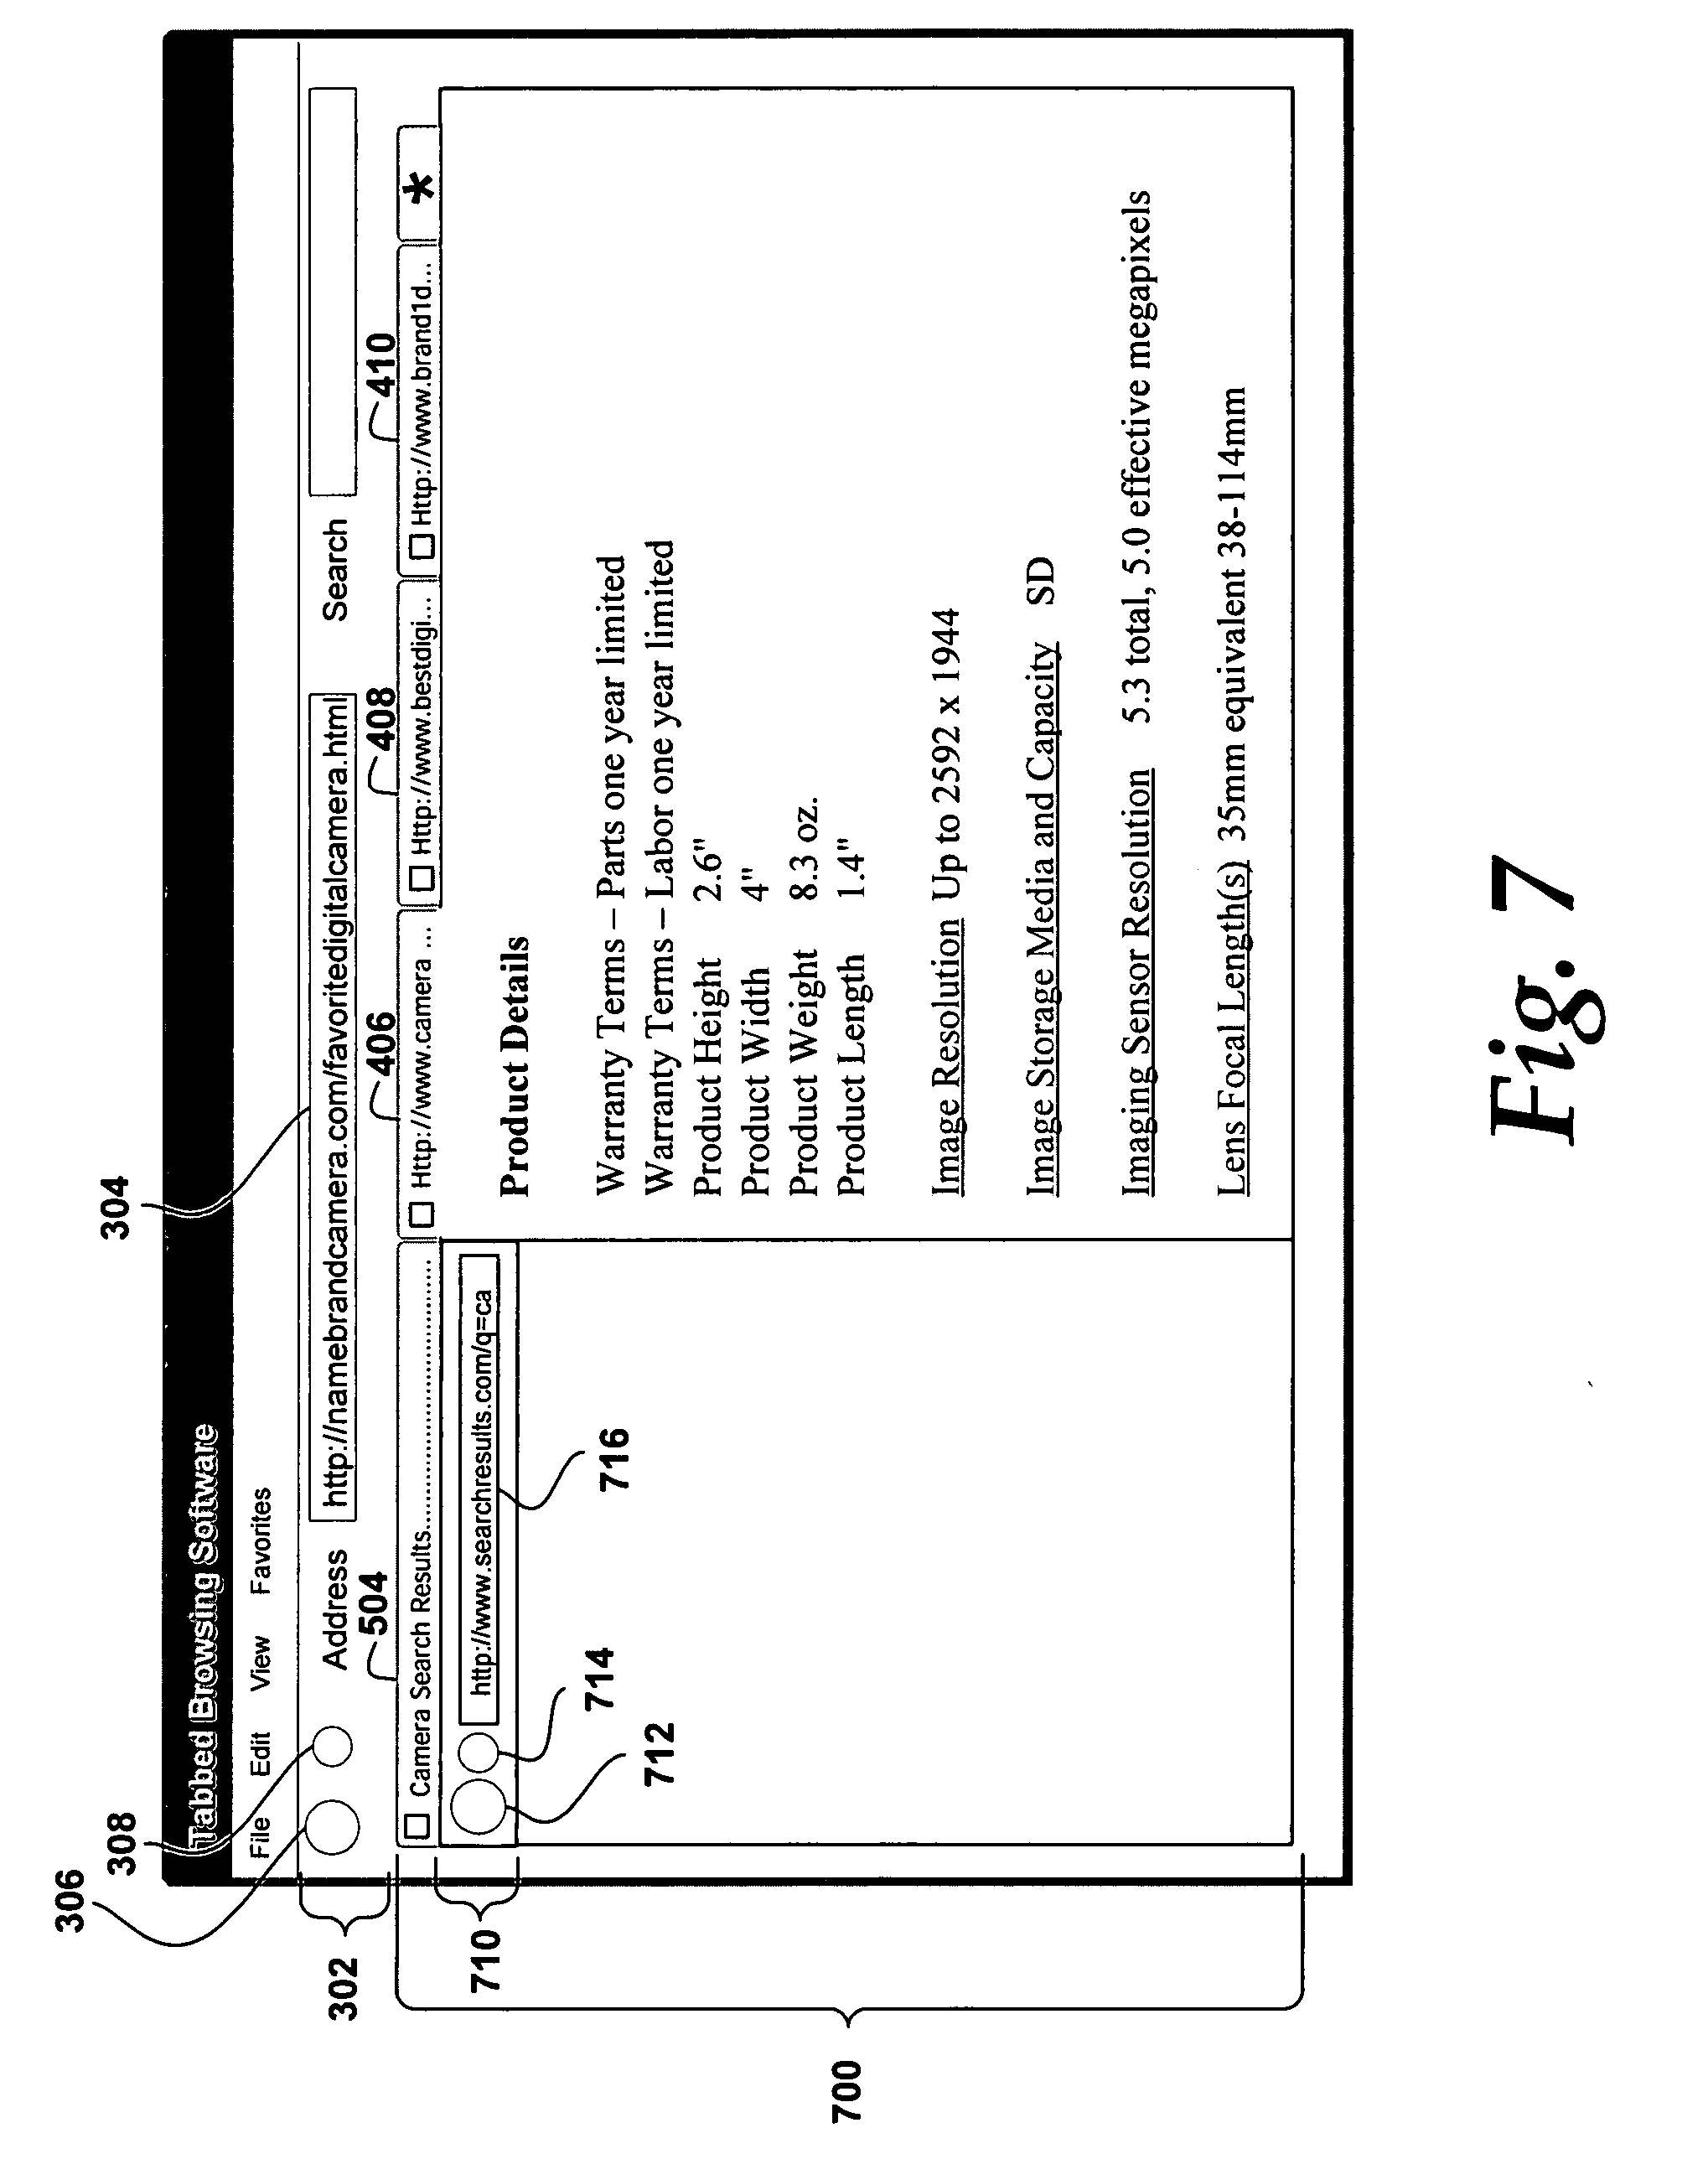 US20060218500A1 - System and method for pinning tabs in a